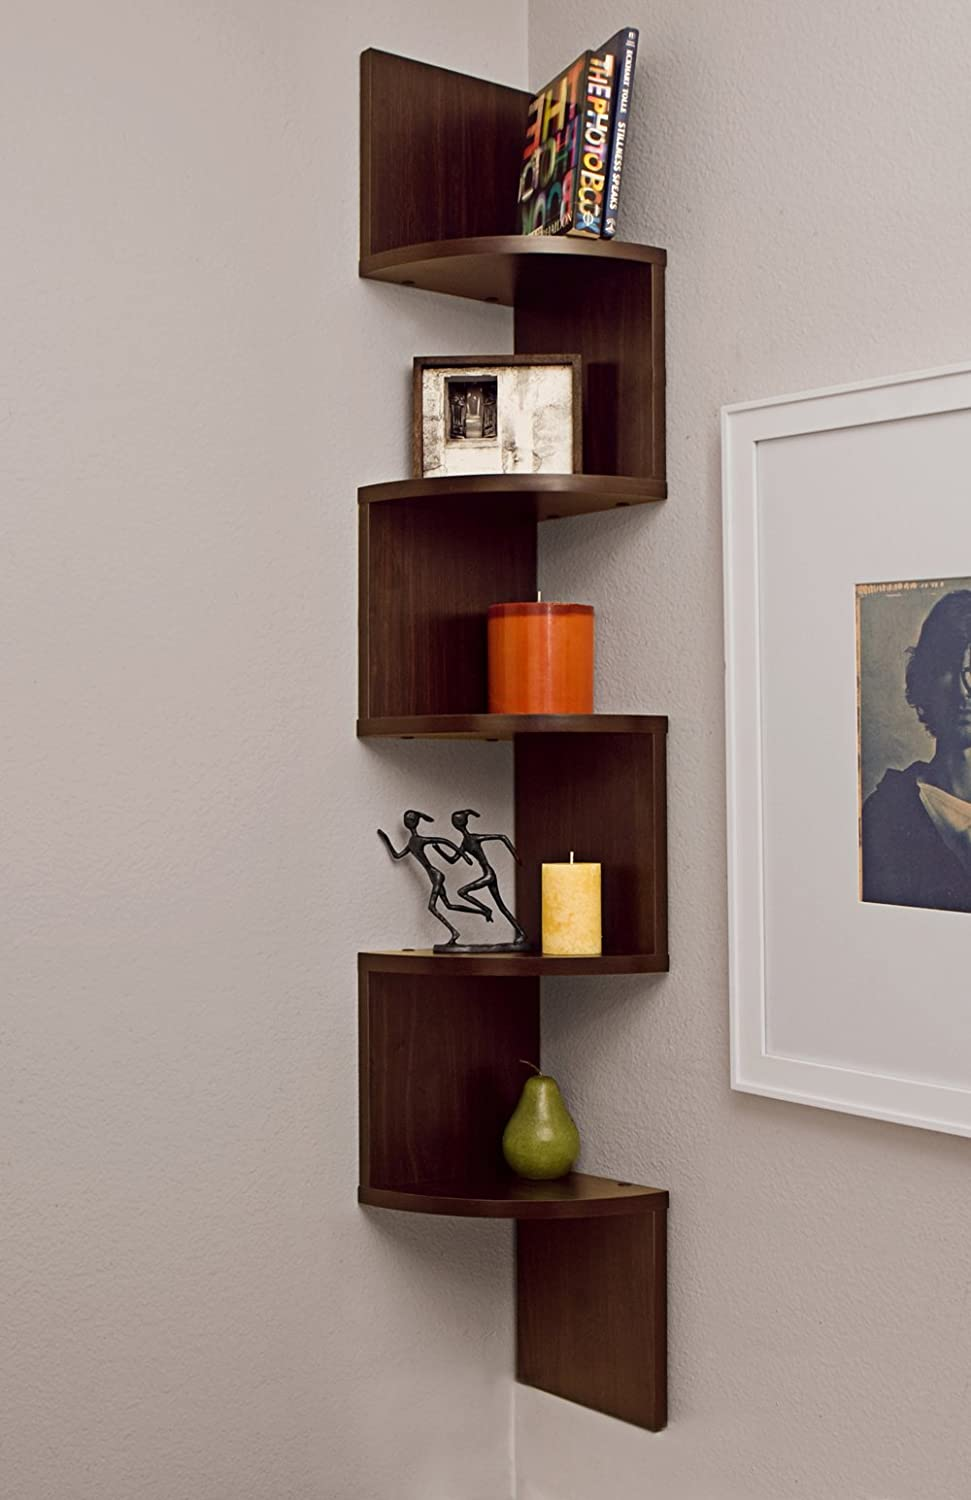 Amazon.com: Danya B Large Corner Wall Mount Shelf   Walnut: Home U0026 Kitchen